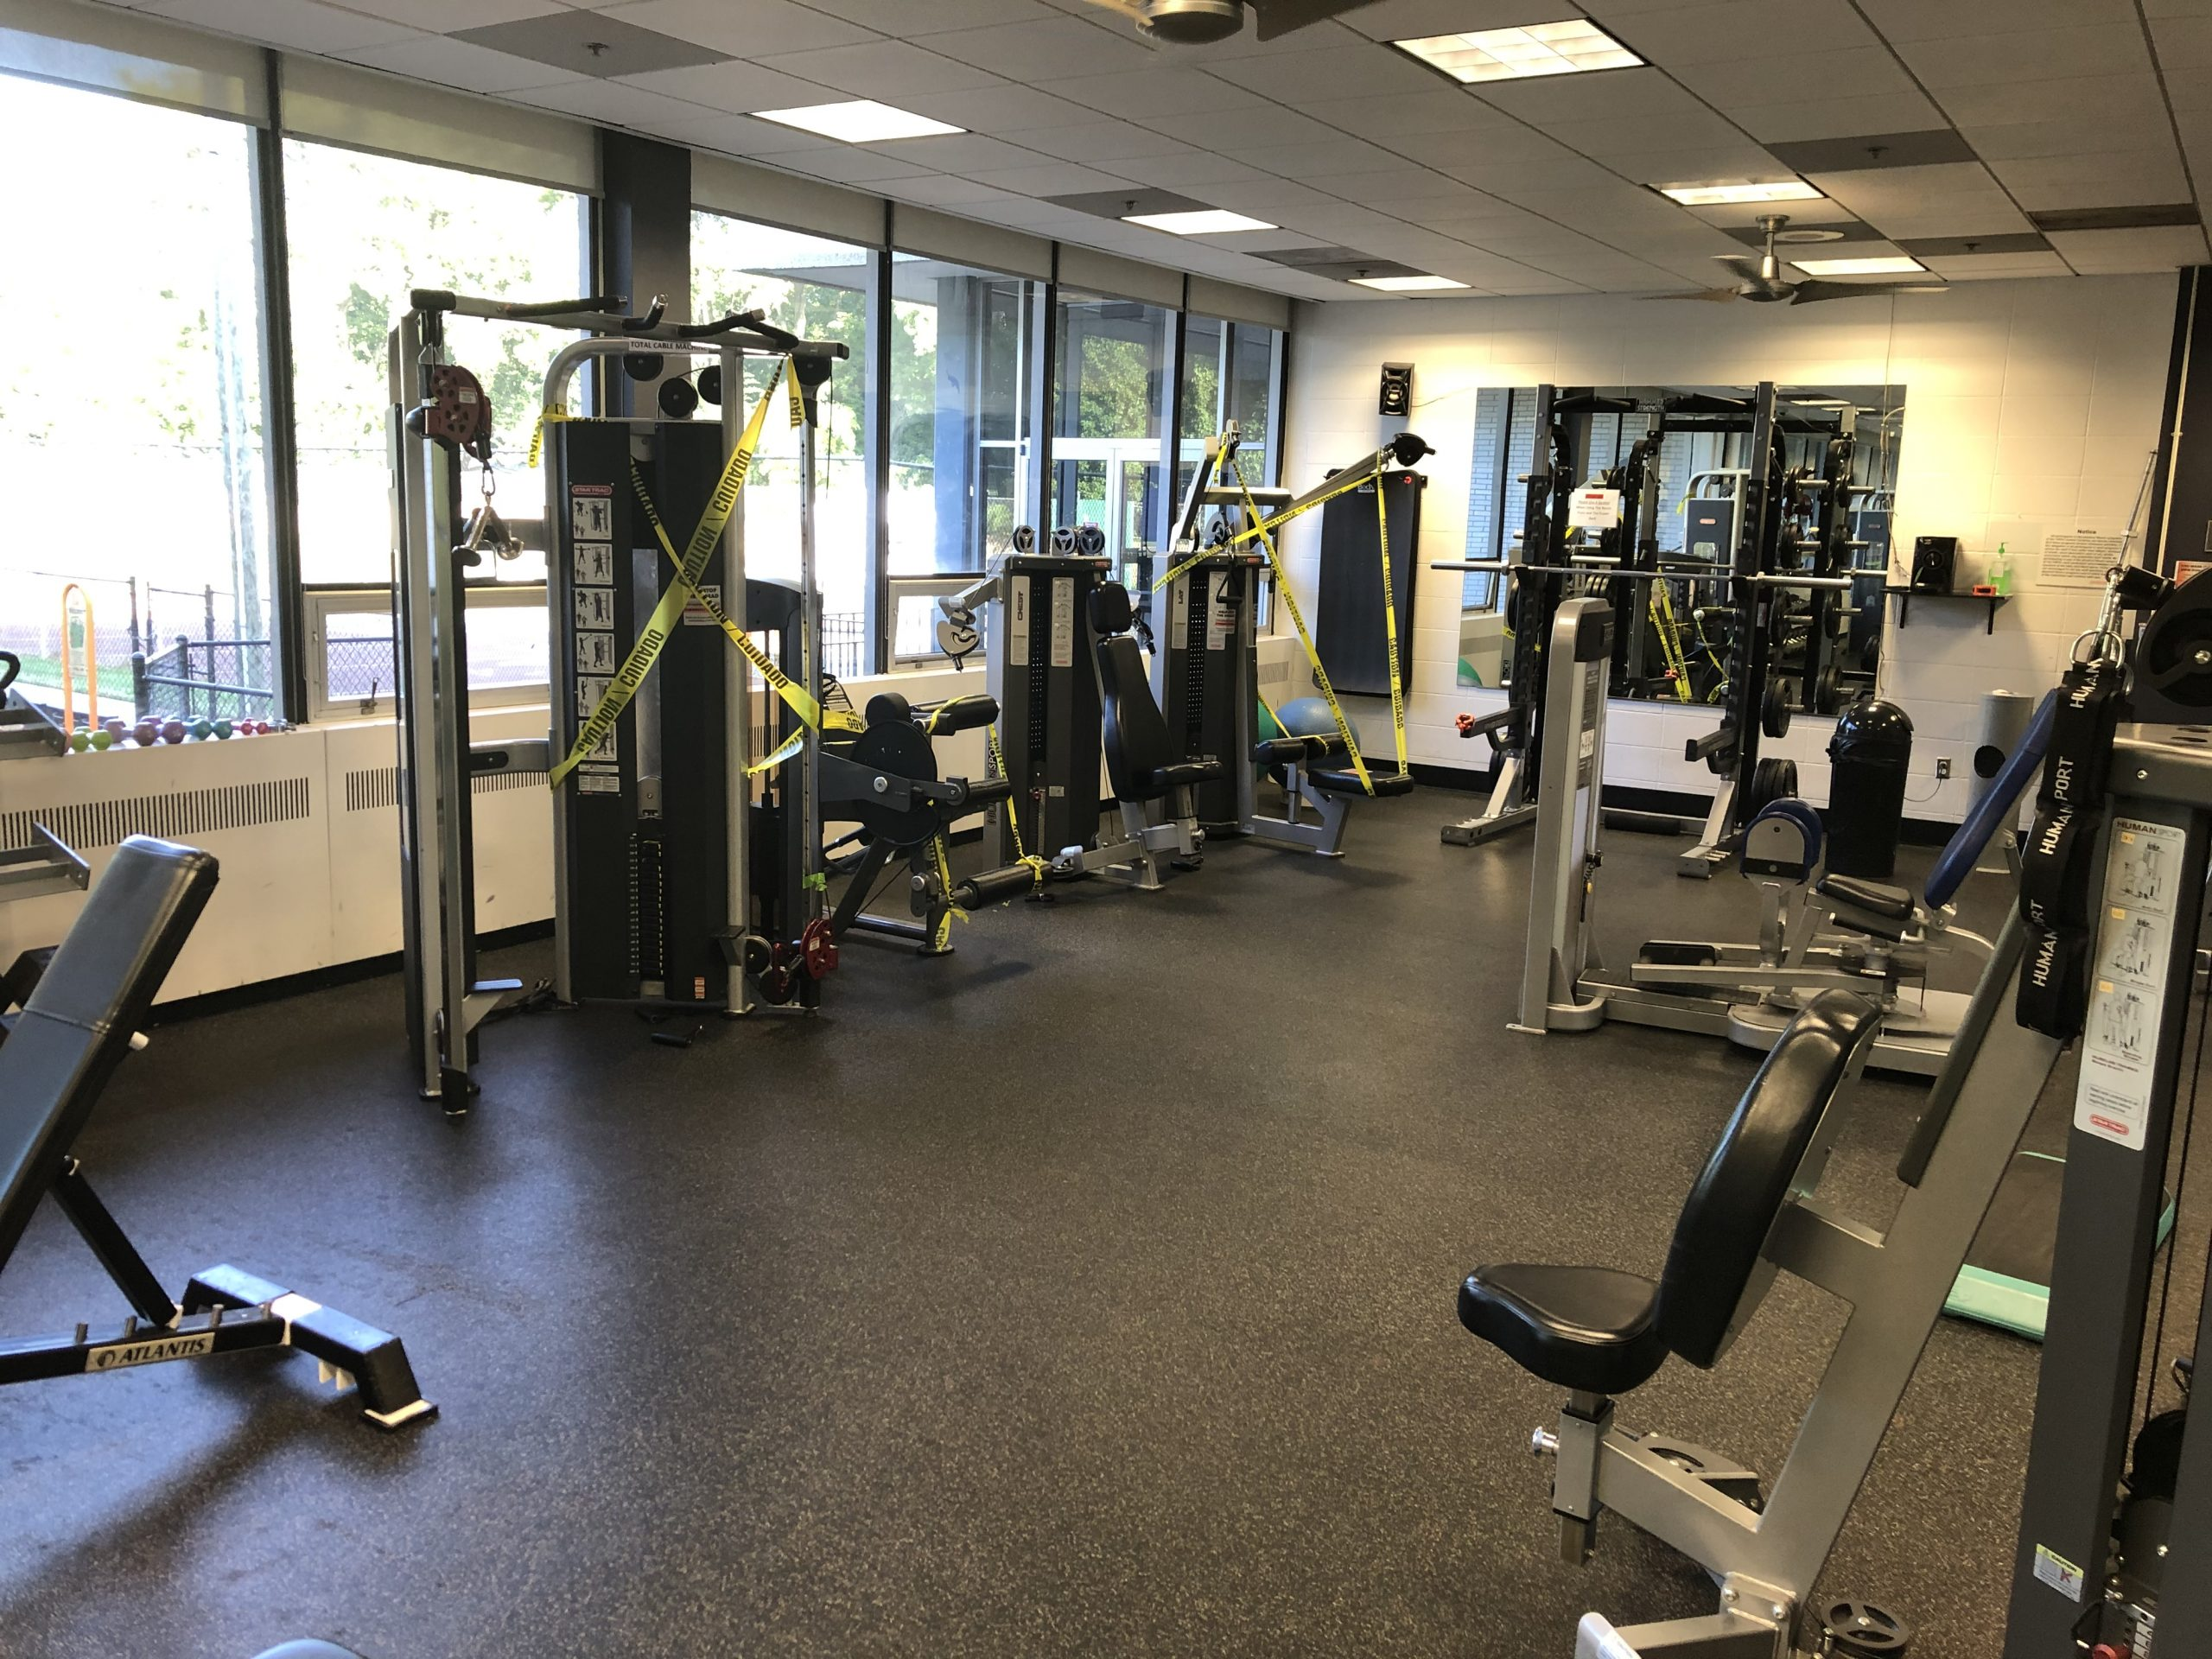 COVID19, social distancing, fitness center, YWCA, gym, co-ed gym, workout, weight gym, lifting